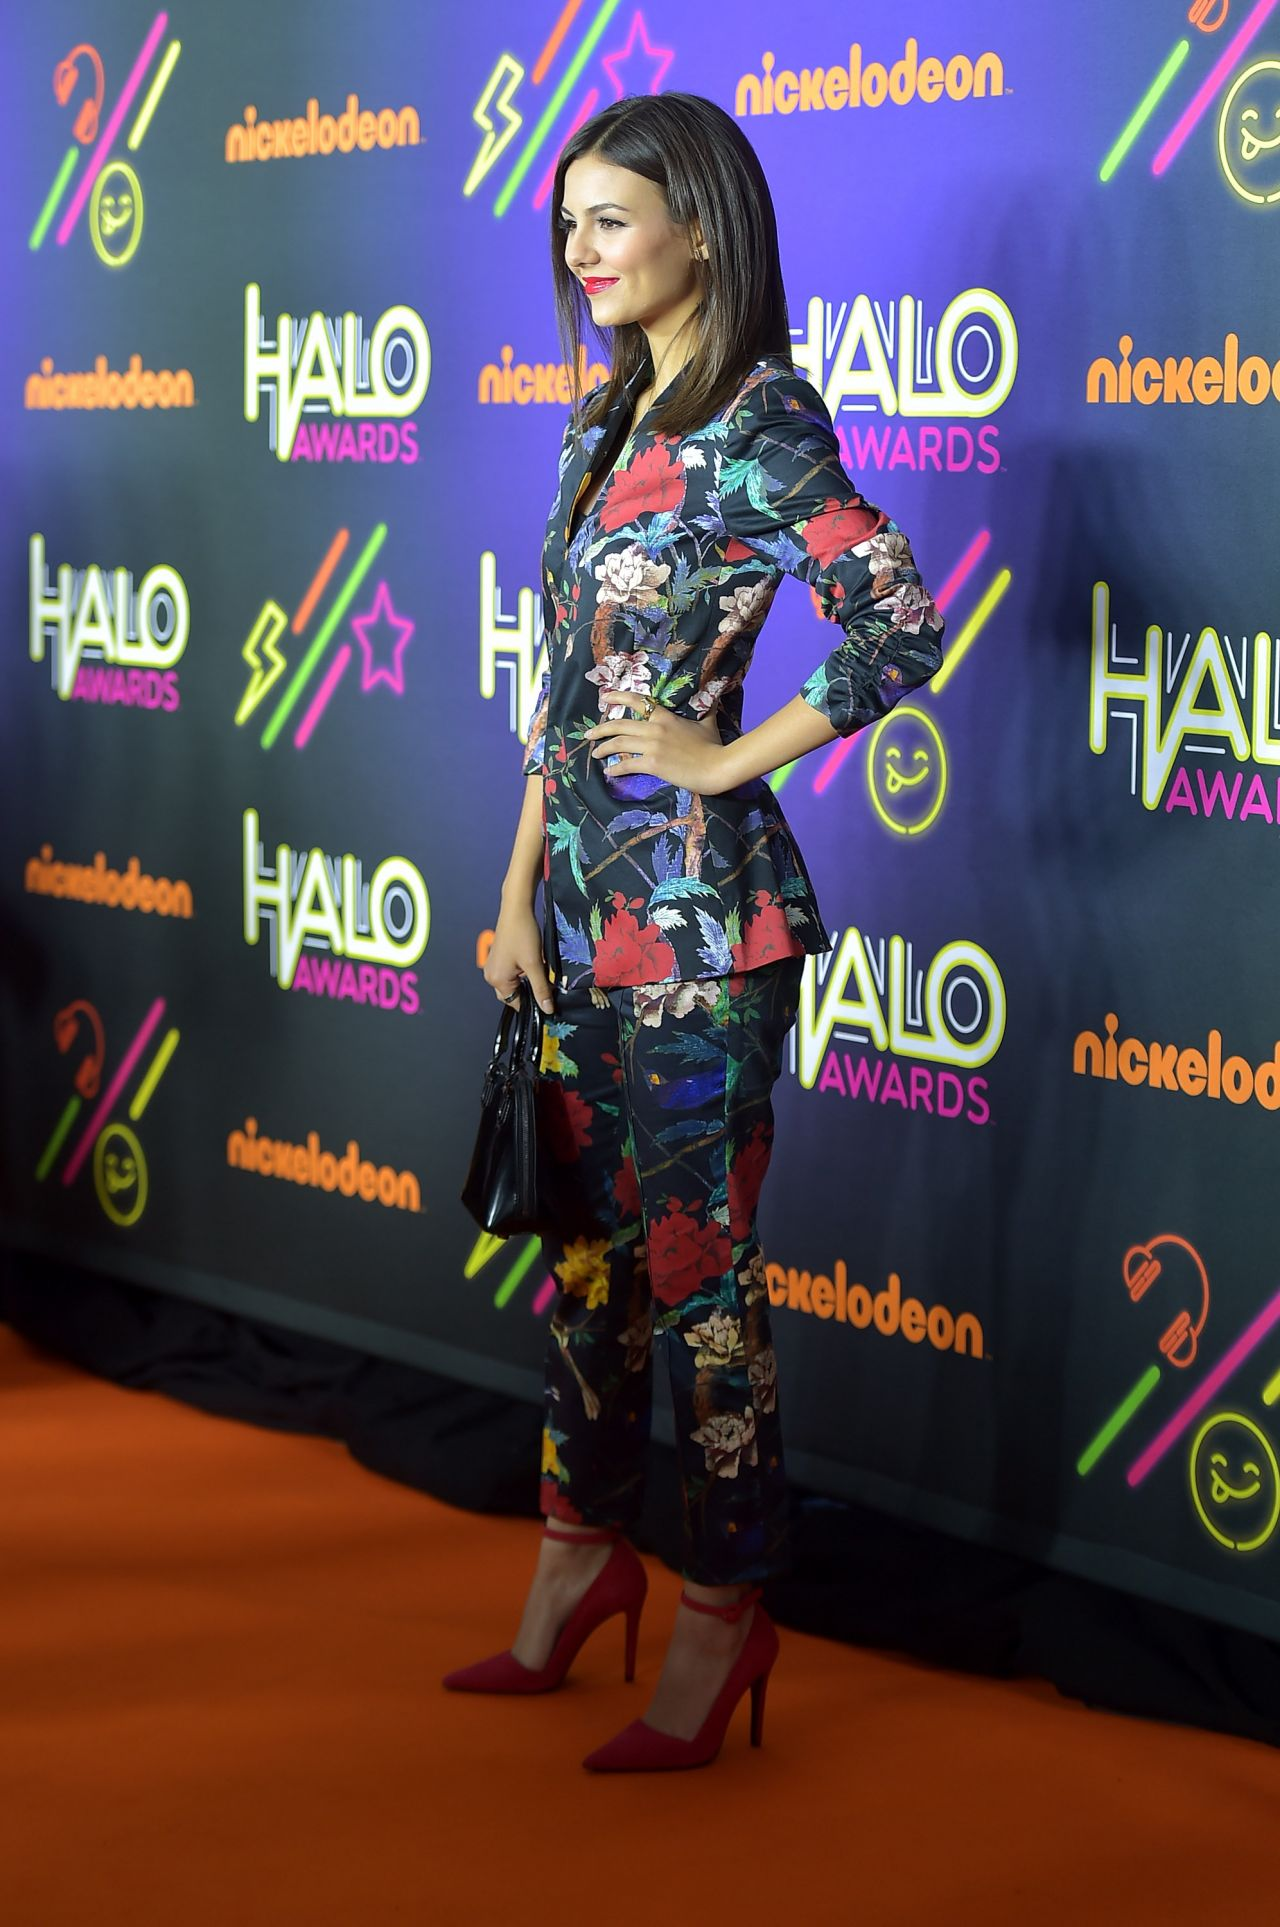 victoria-justice-2014-nickelodeon-halo-awards-in-new-york-city_8